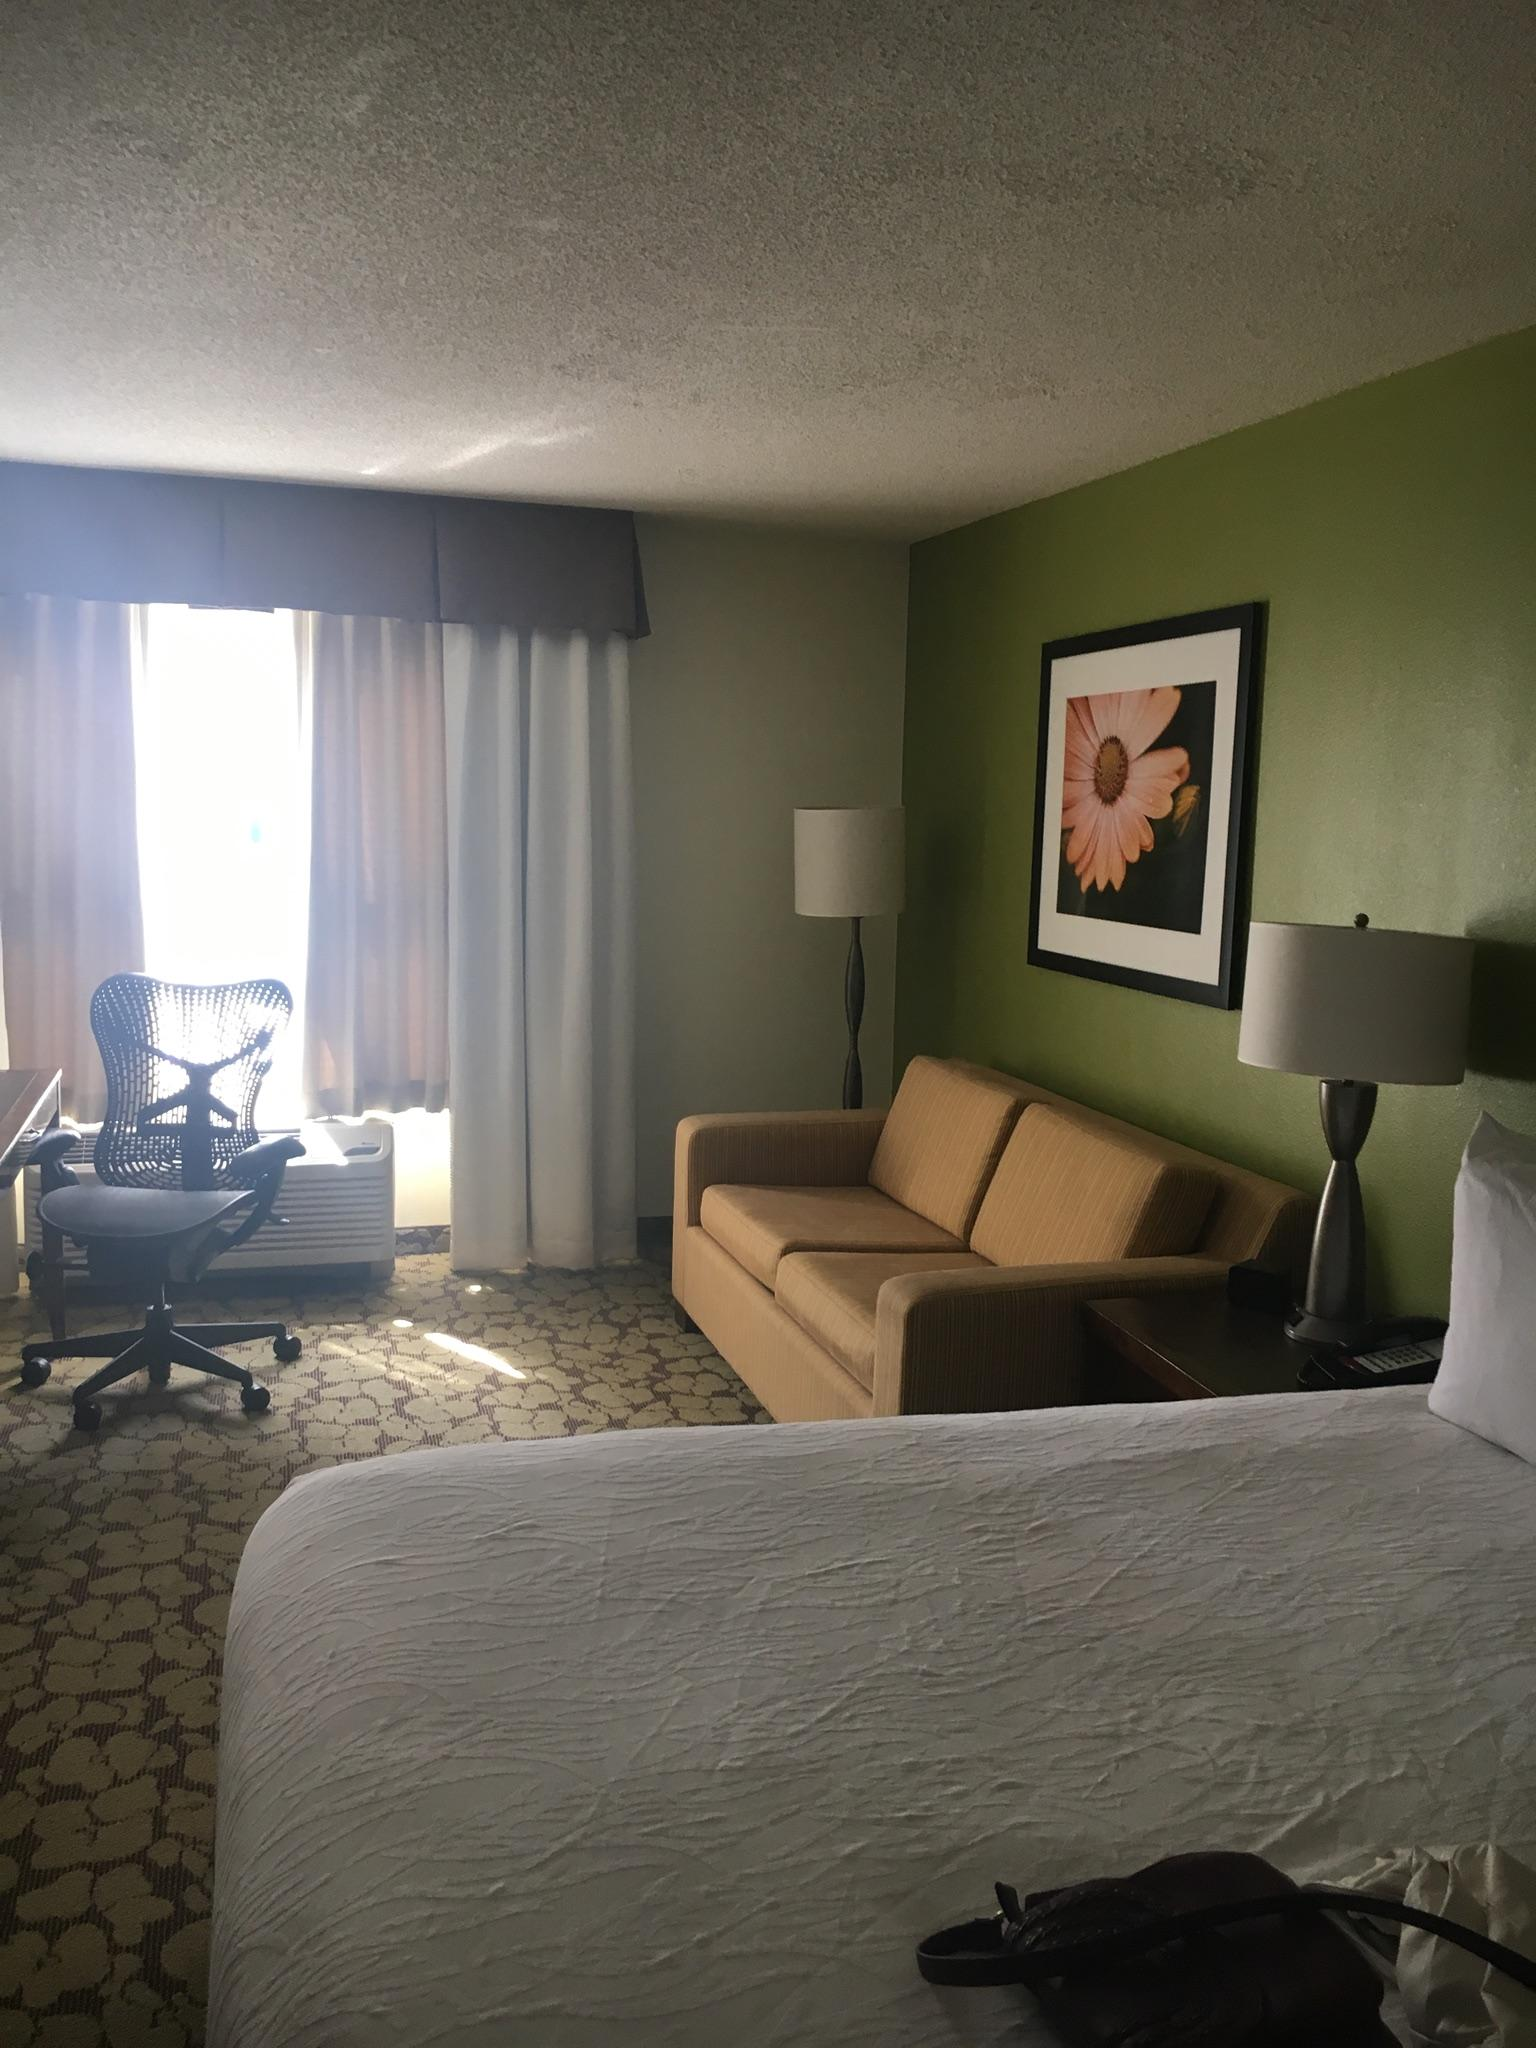 yes the hotel offer free parking but you has to walk up and down a flight of stairs secondly the hotel offers complimentary valet parking - Hilton Garden Inn Atlanta